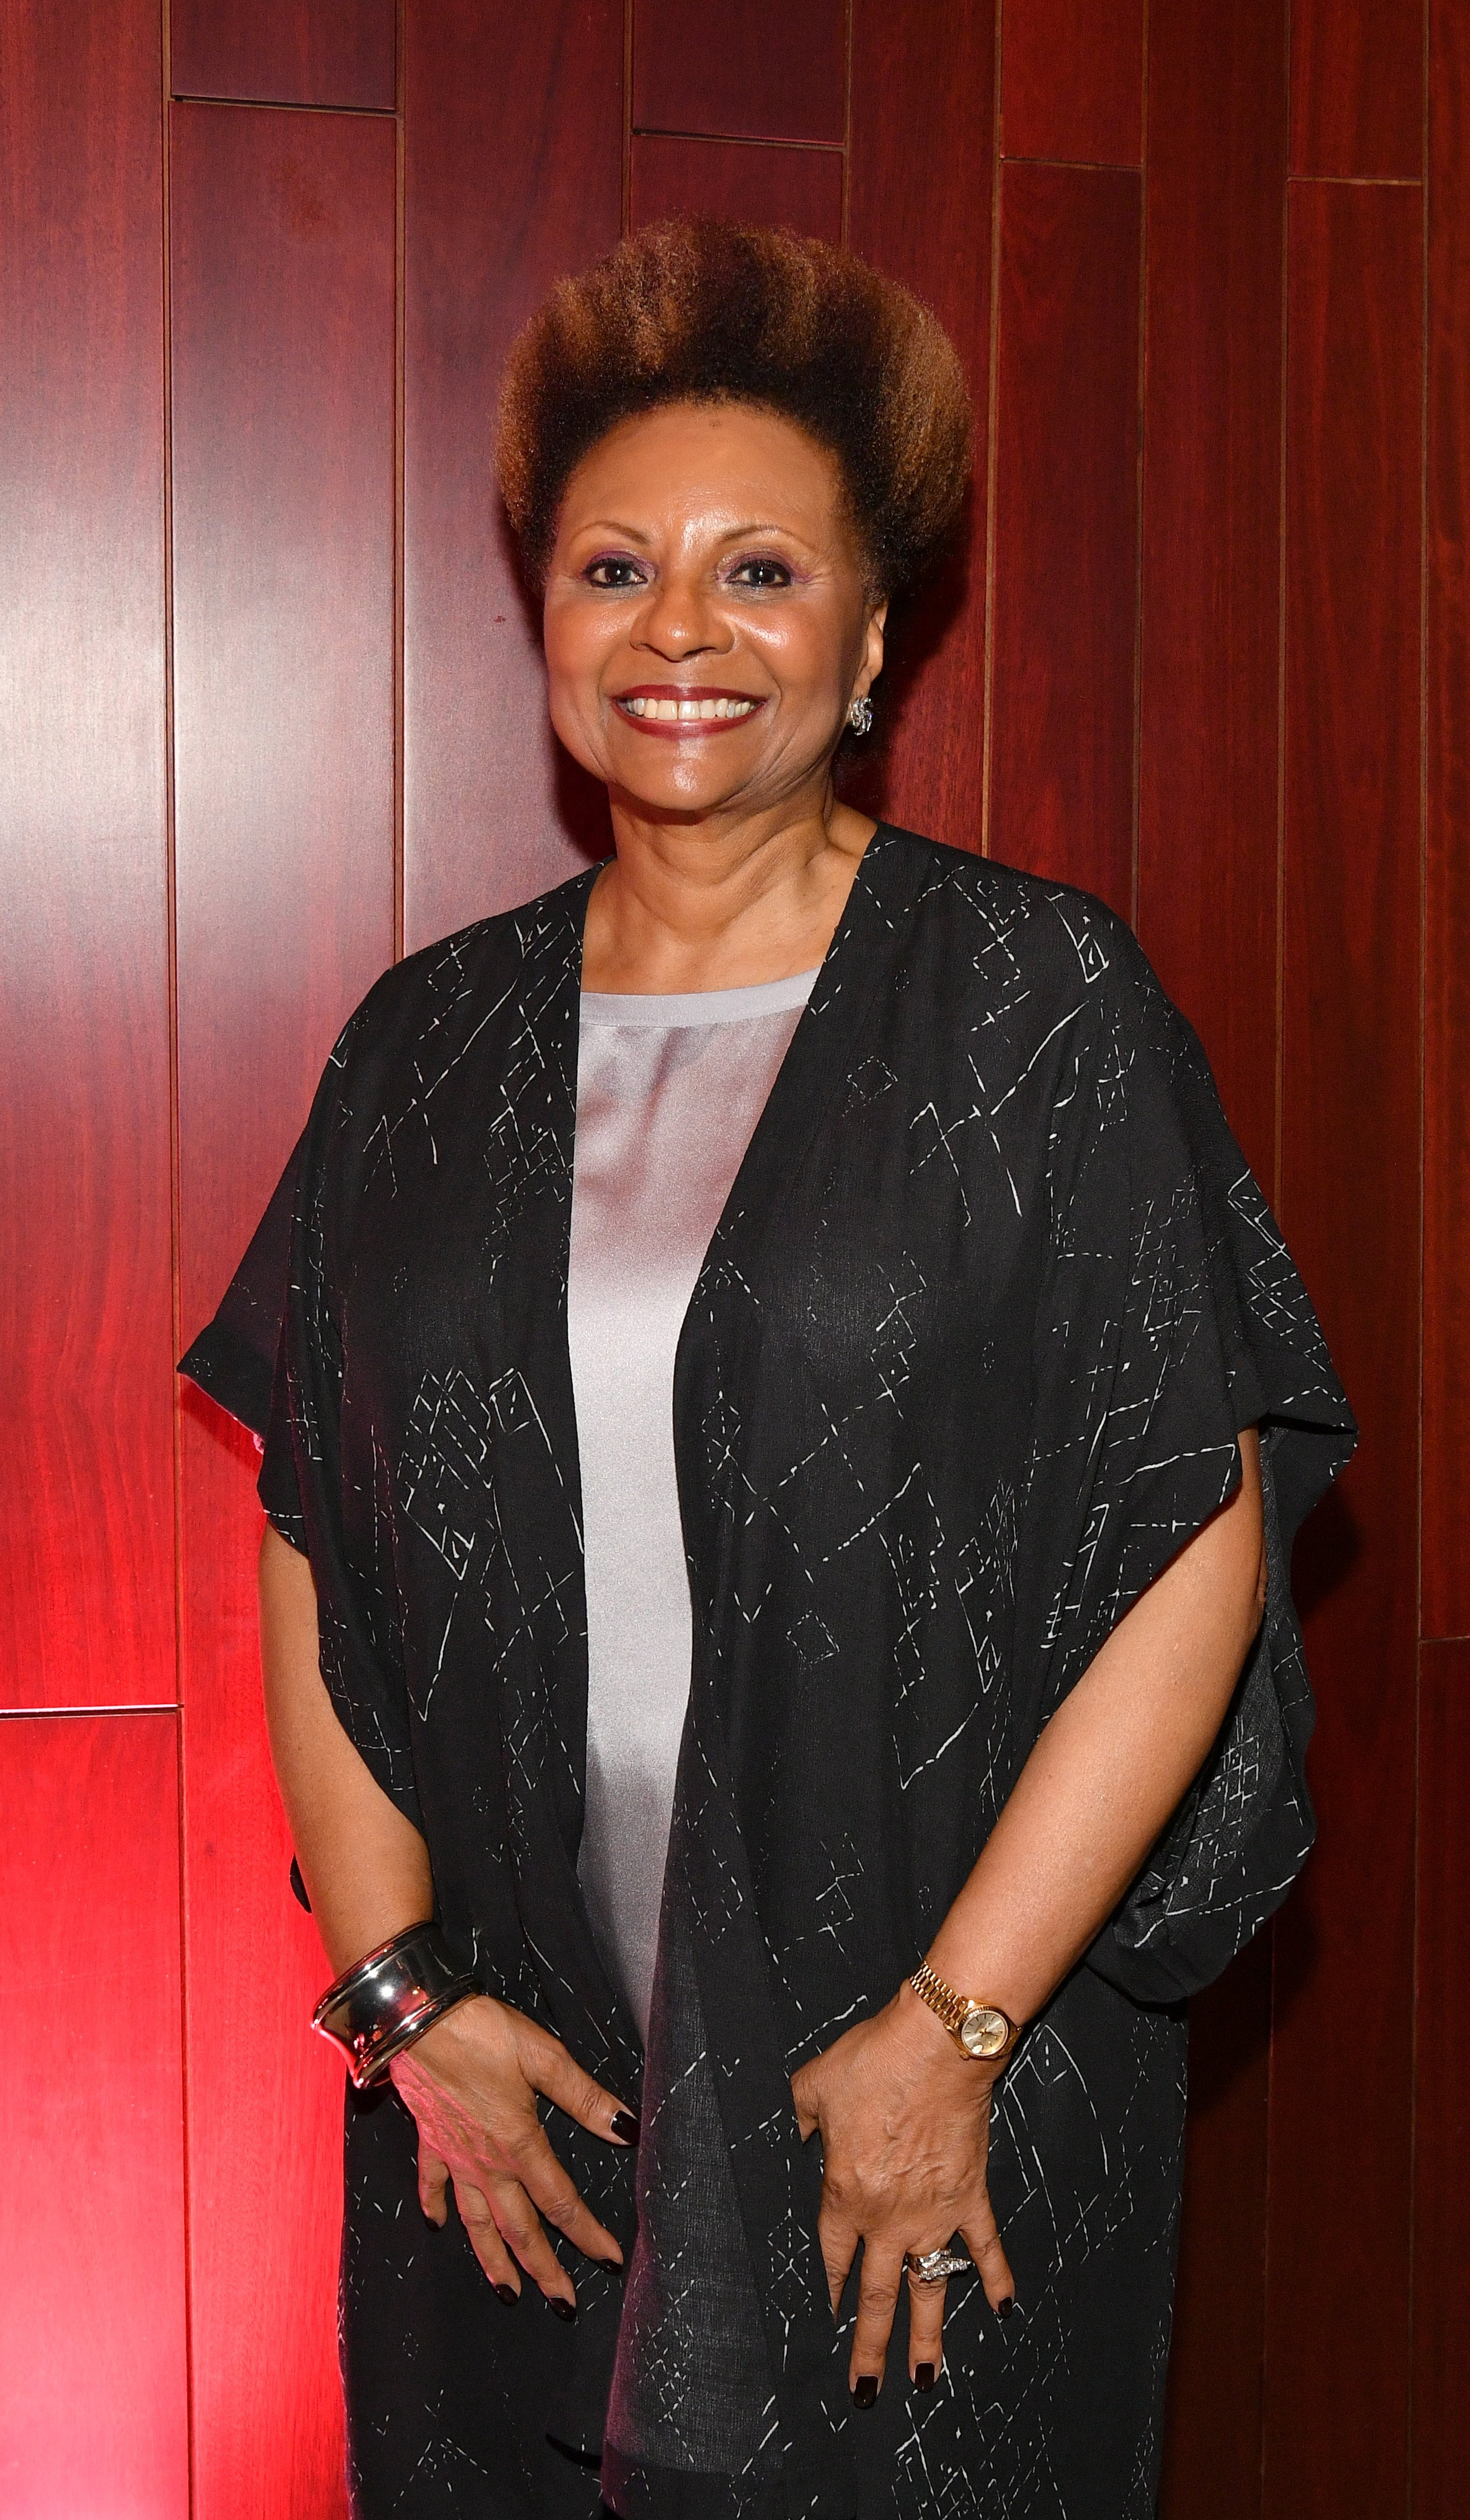 Leslie Uggams at the Lincoln Center Fall Gala on Oct. 24, 2018 in New York City. |Photo: Getty Images